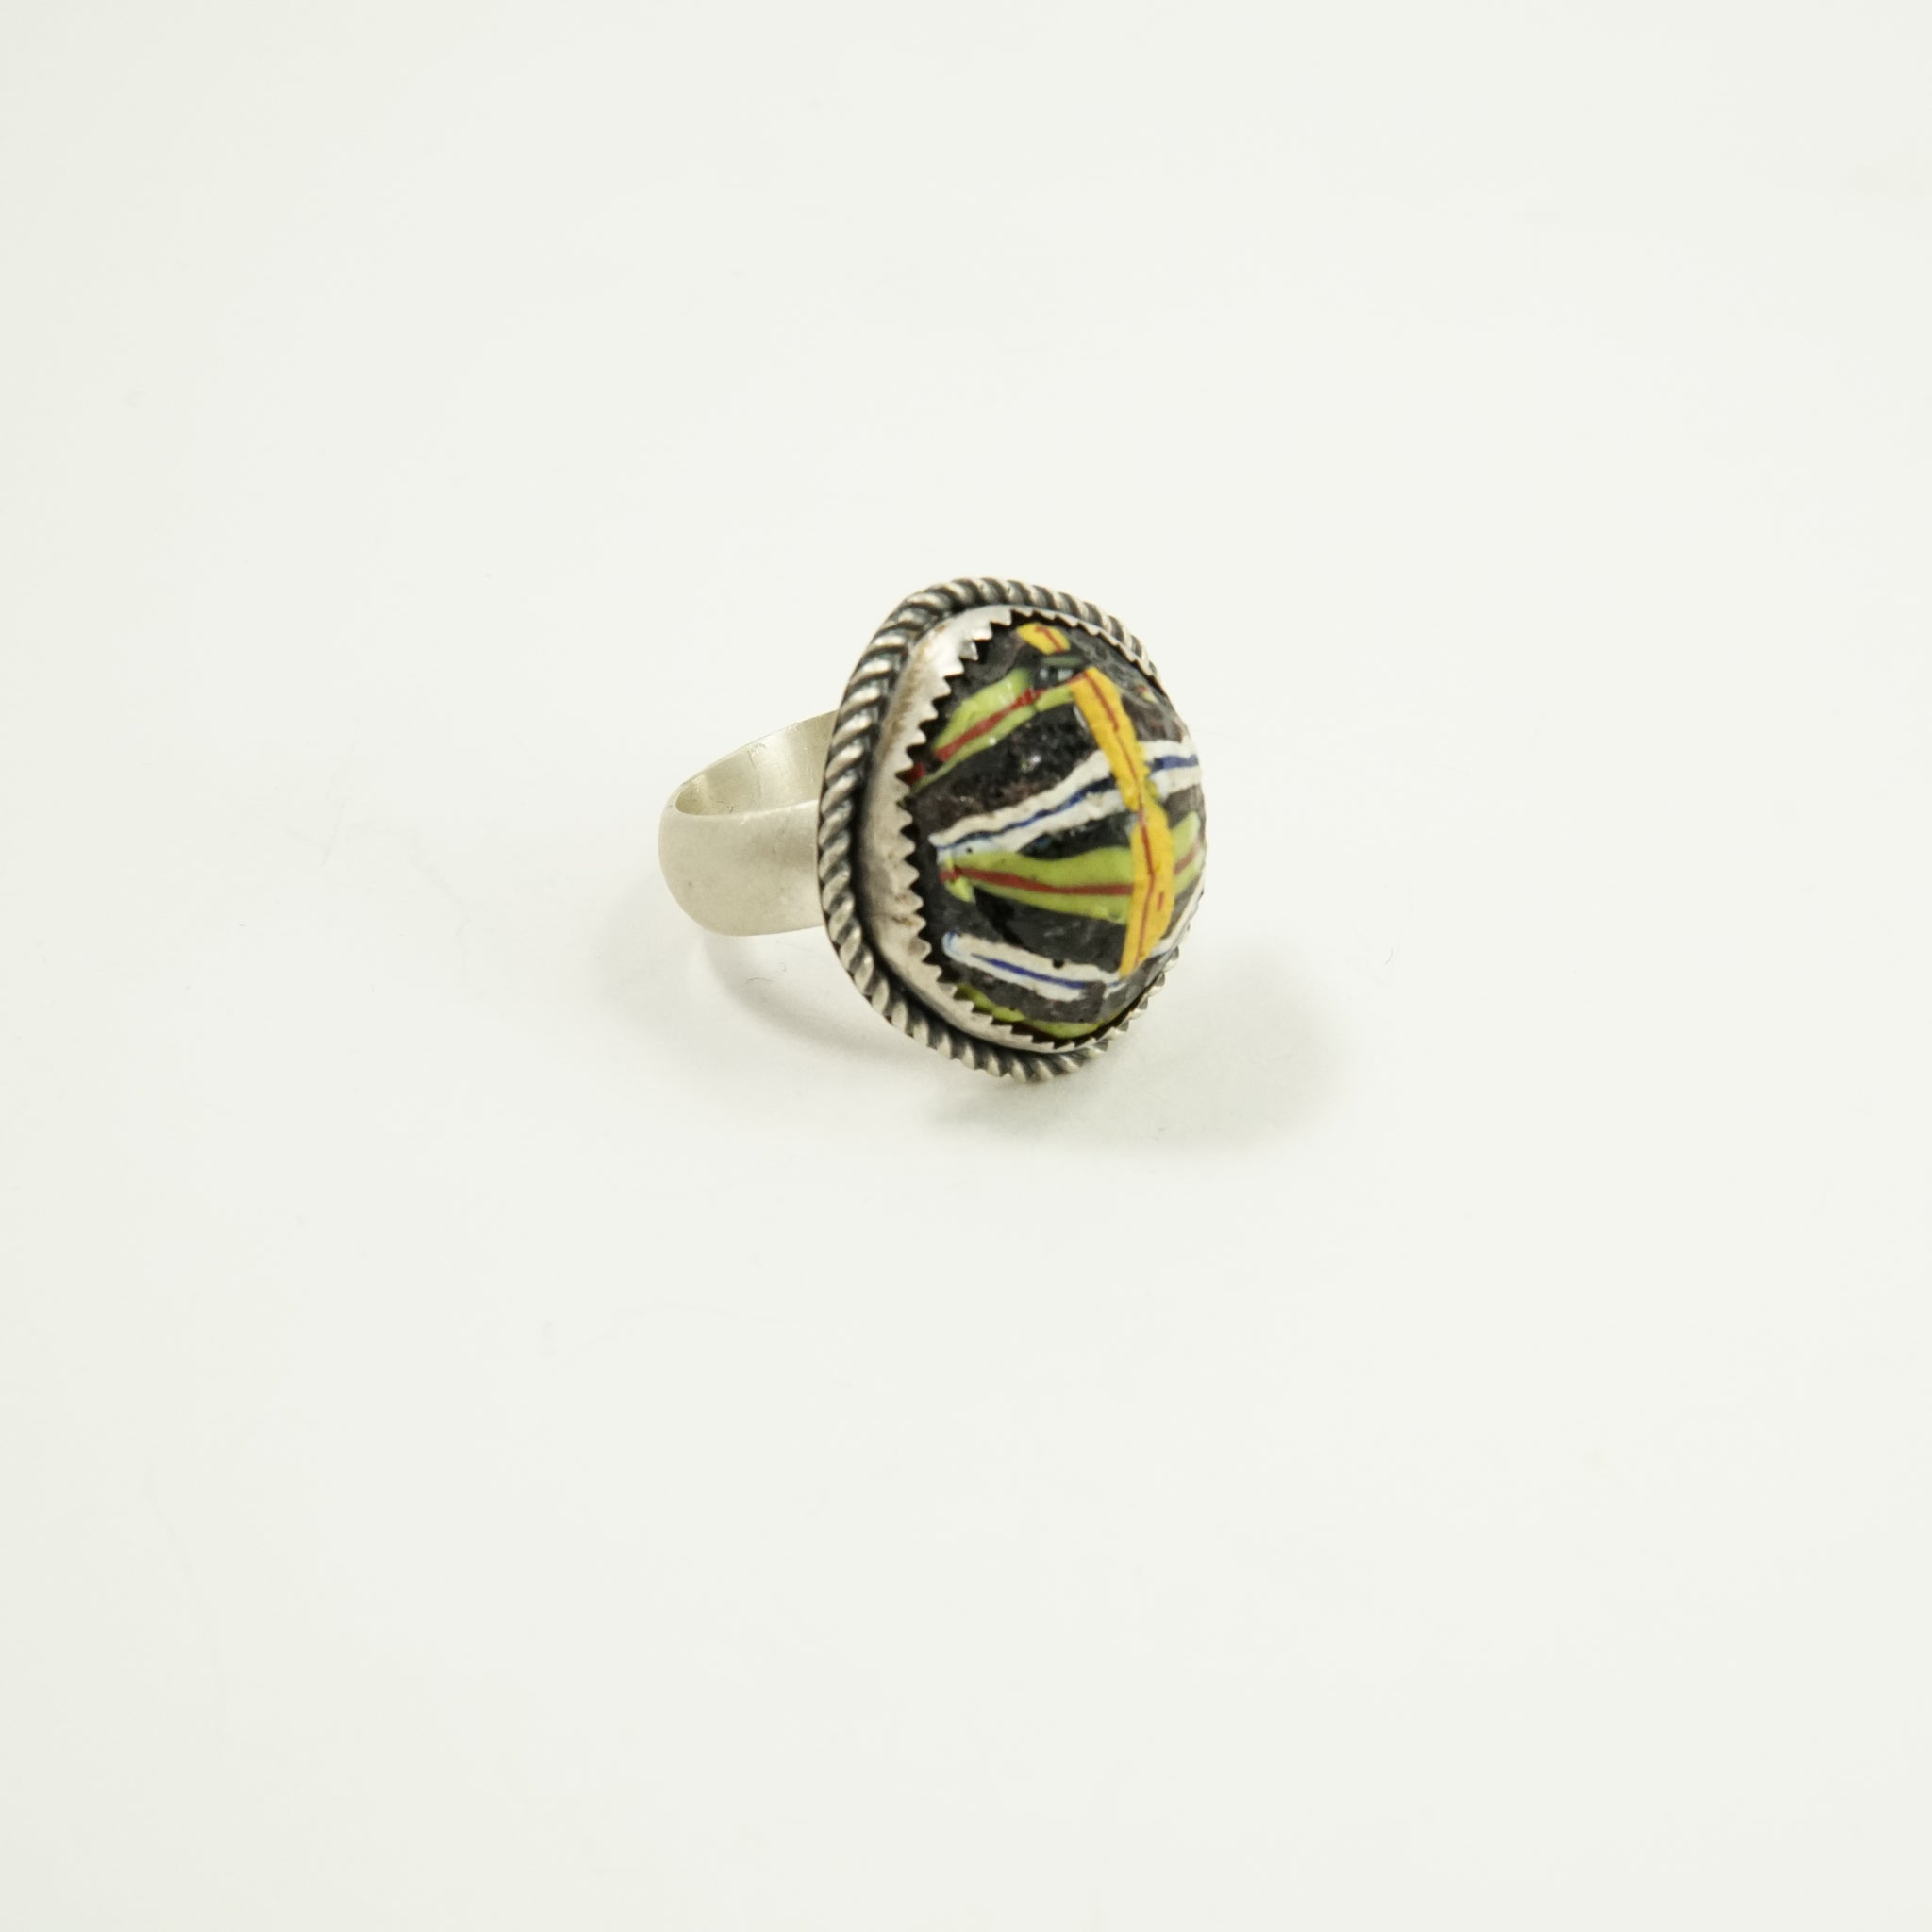 RG TRADE BEAD RING BY MARTHA WILLETO